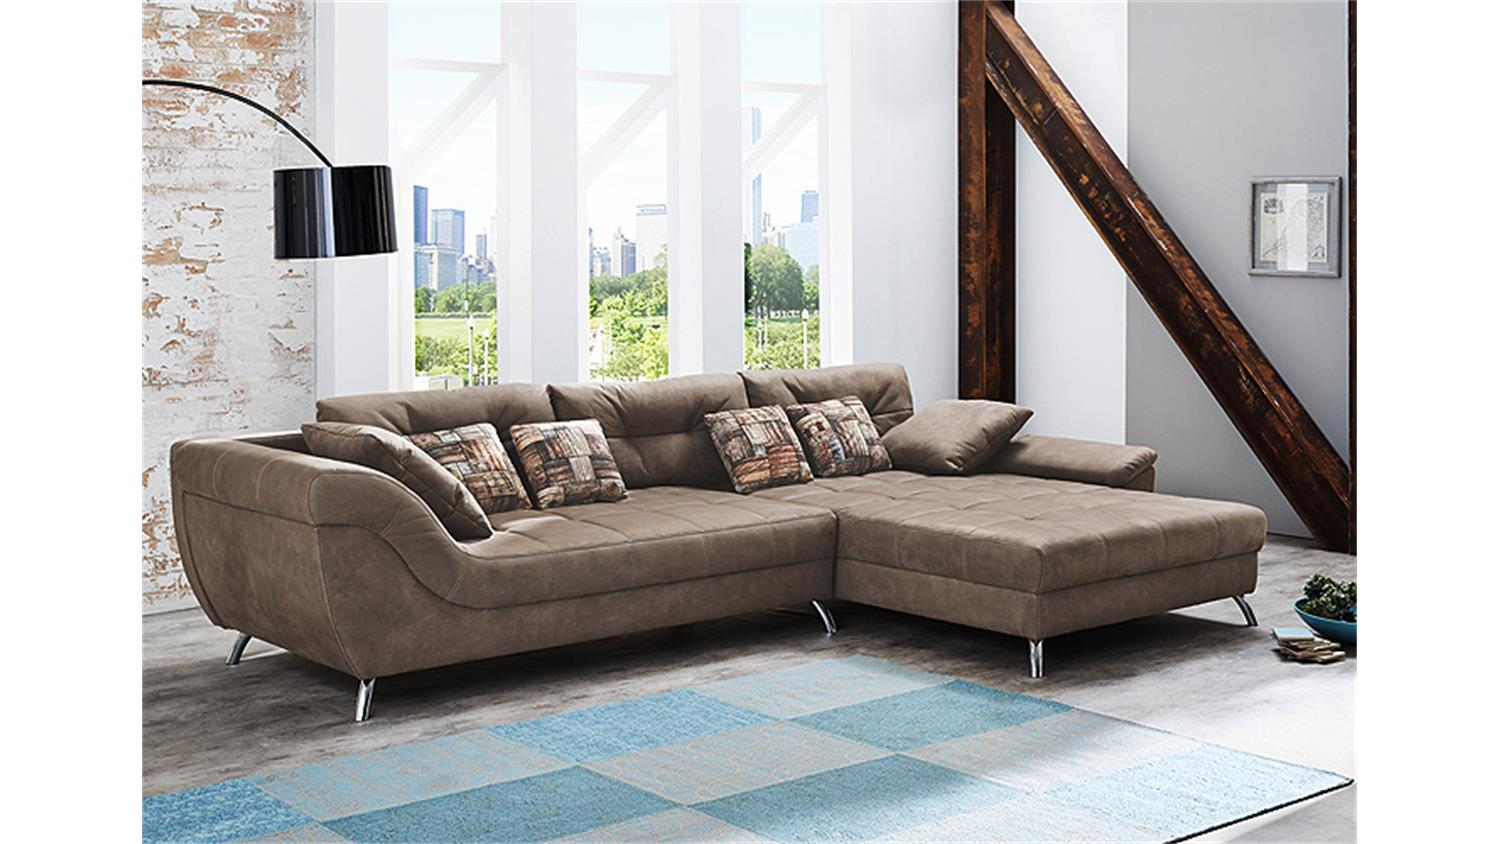 Stylische Sofas san francisco sofa ecksofa in antikbraun